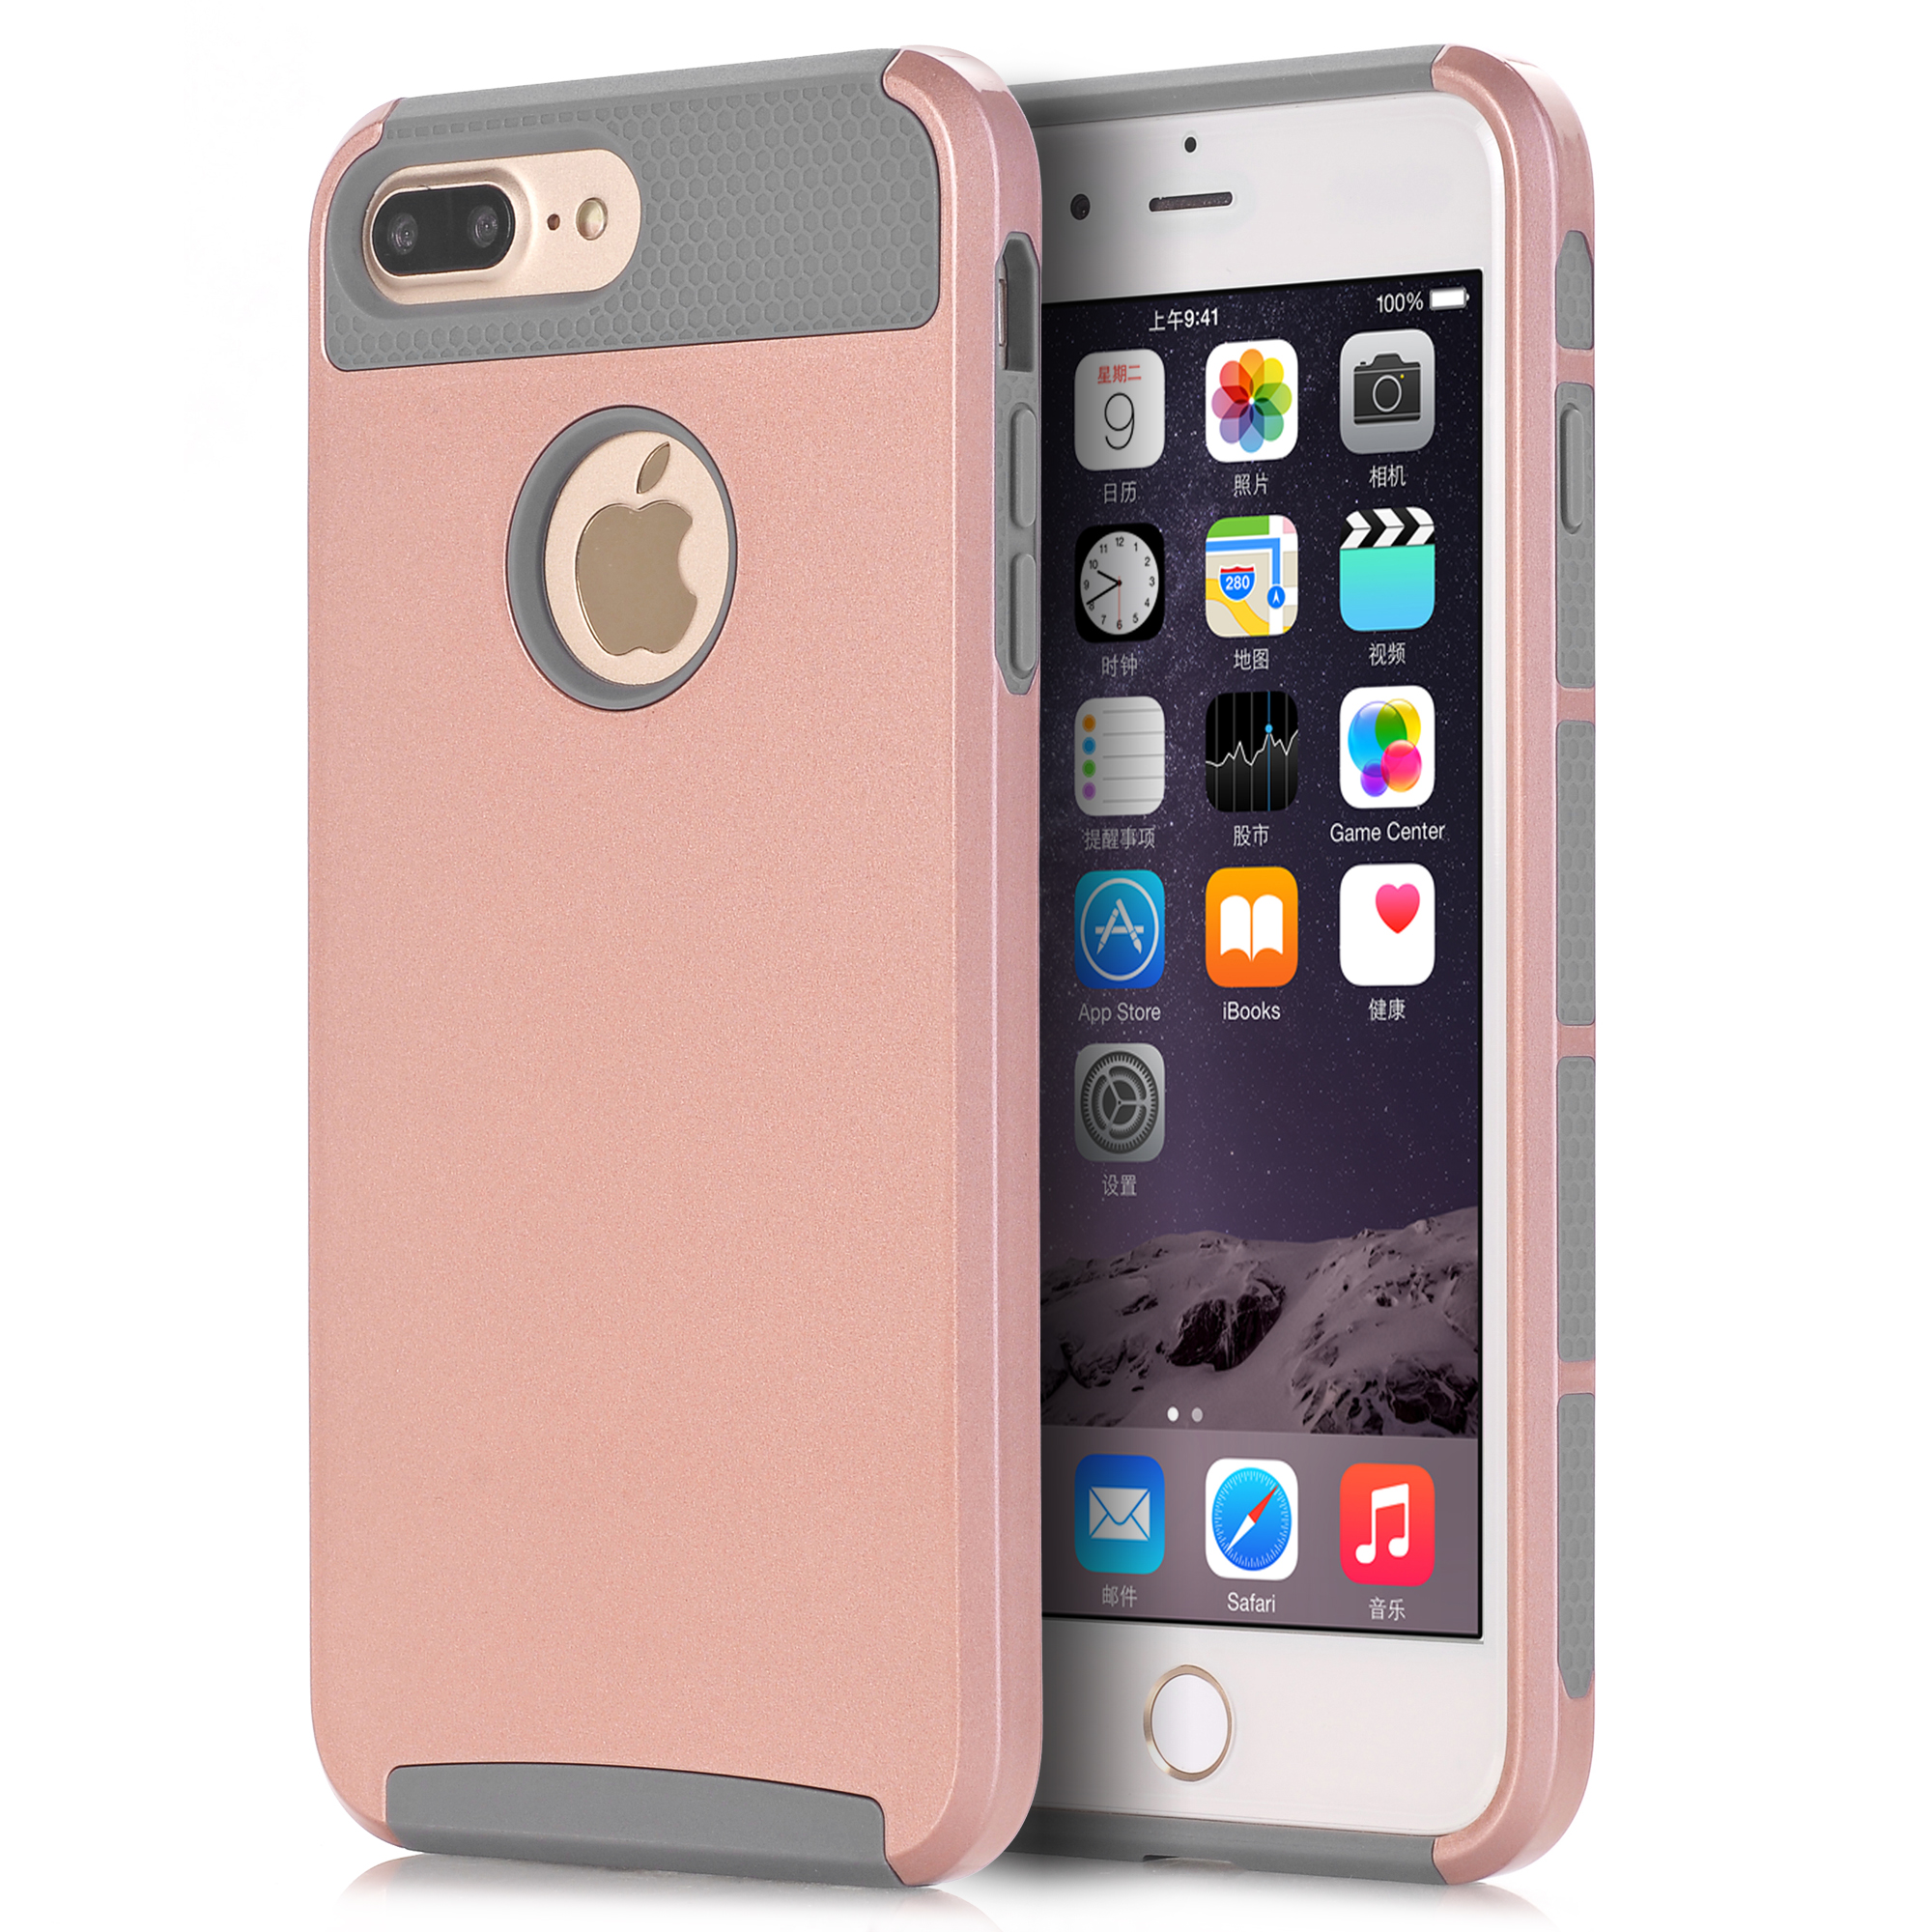 Case Cover for Apple iPhone 7 / 7 Plus,WeFor Hybrid Heavy Duty Case 2-in-1 Style Hybrid Hard For iPhone 7 / 7Plus Case Covers